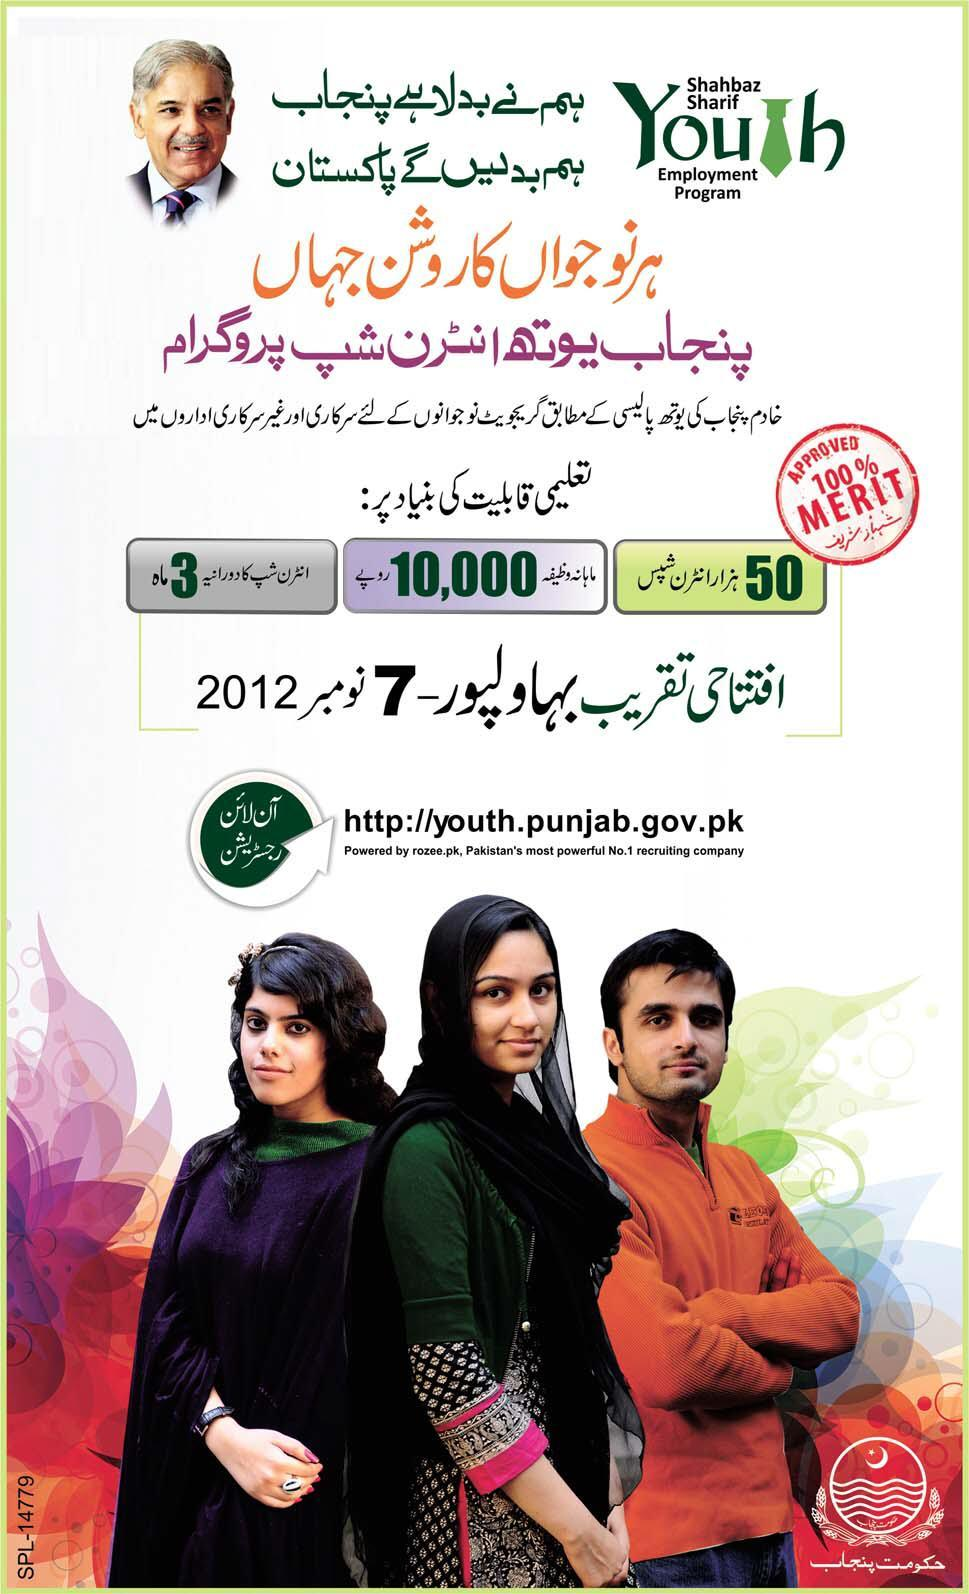 Punjab Youth Internship Program (PYIP) 2012-2013